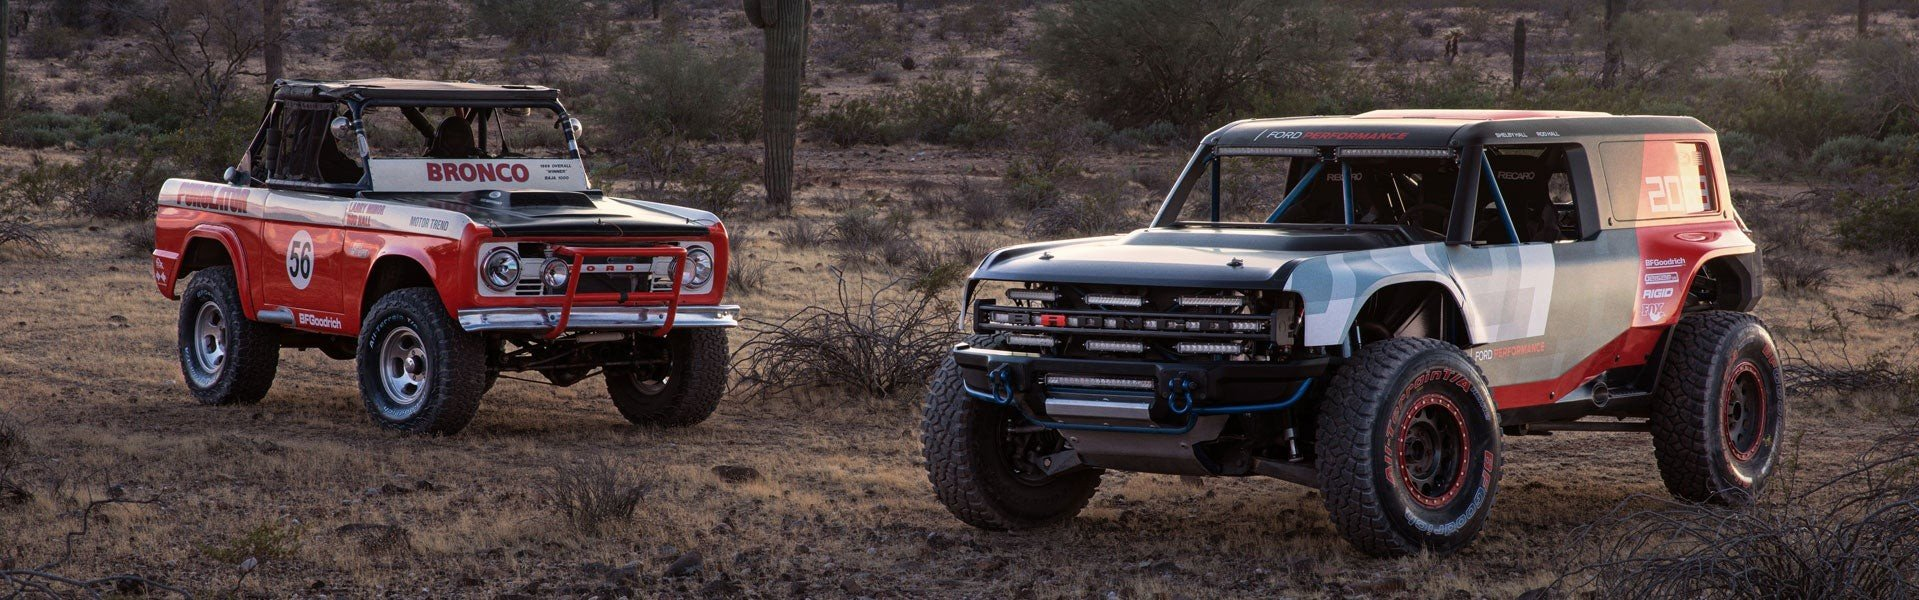 Two 2021 Ford Broncos Parked in the Desert